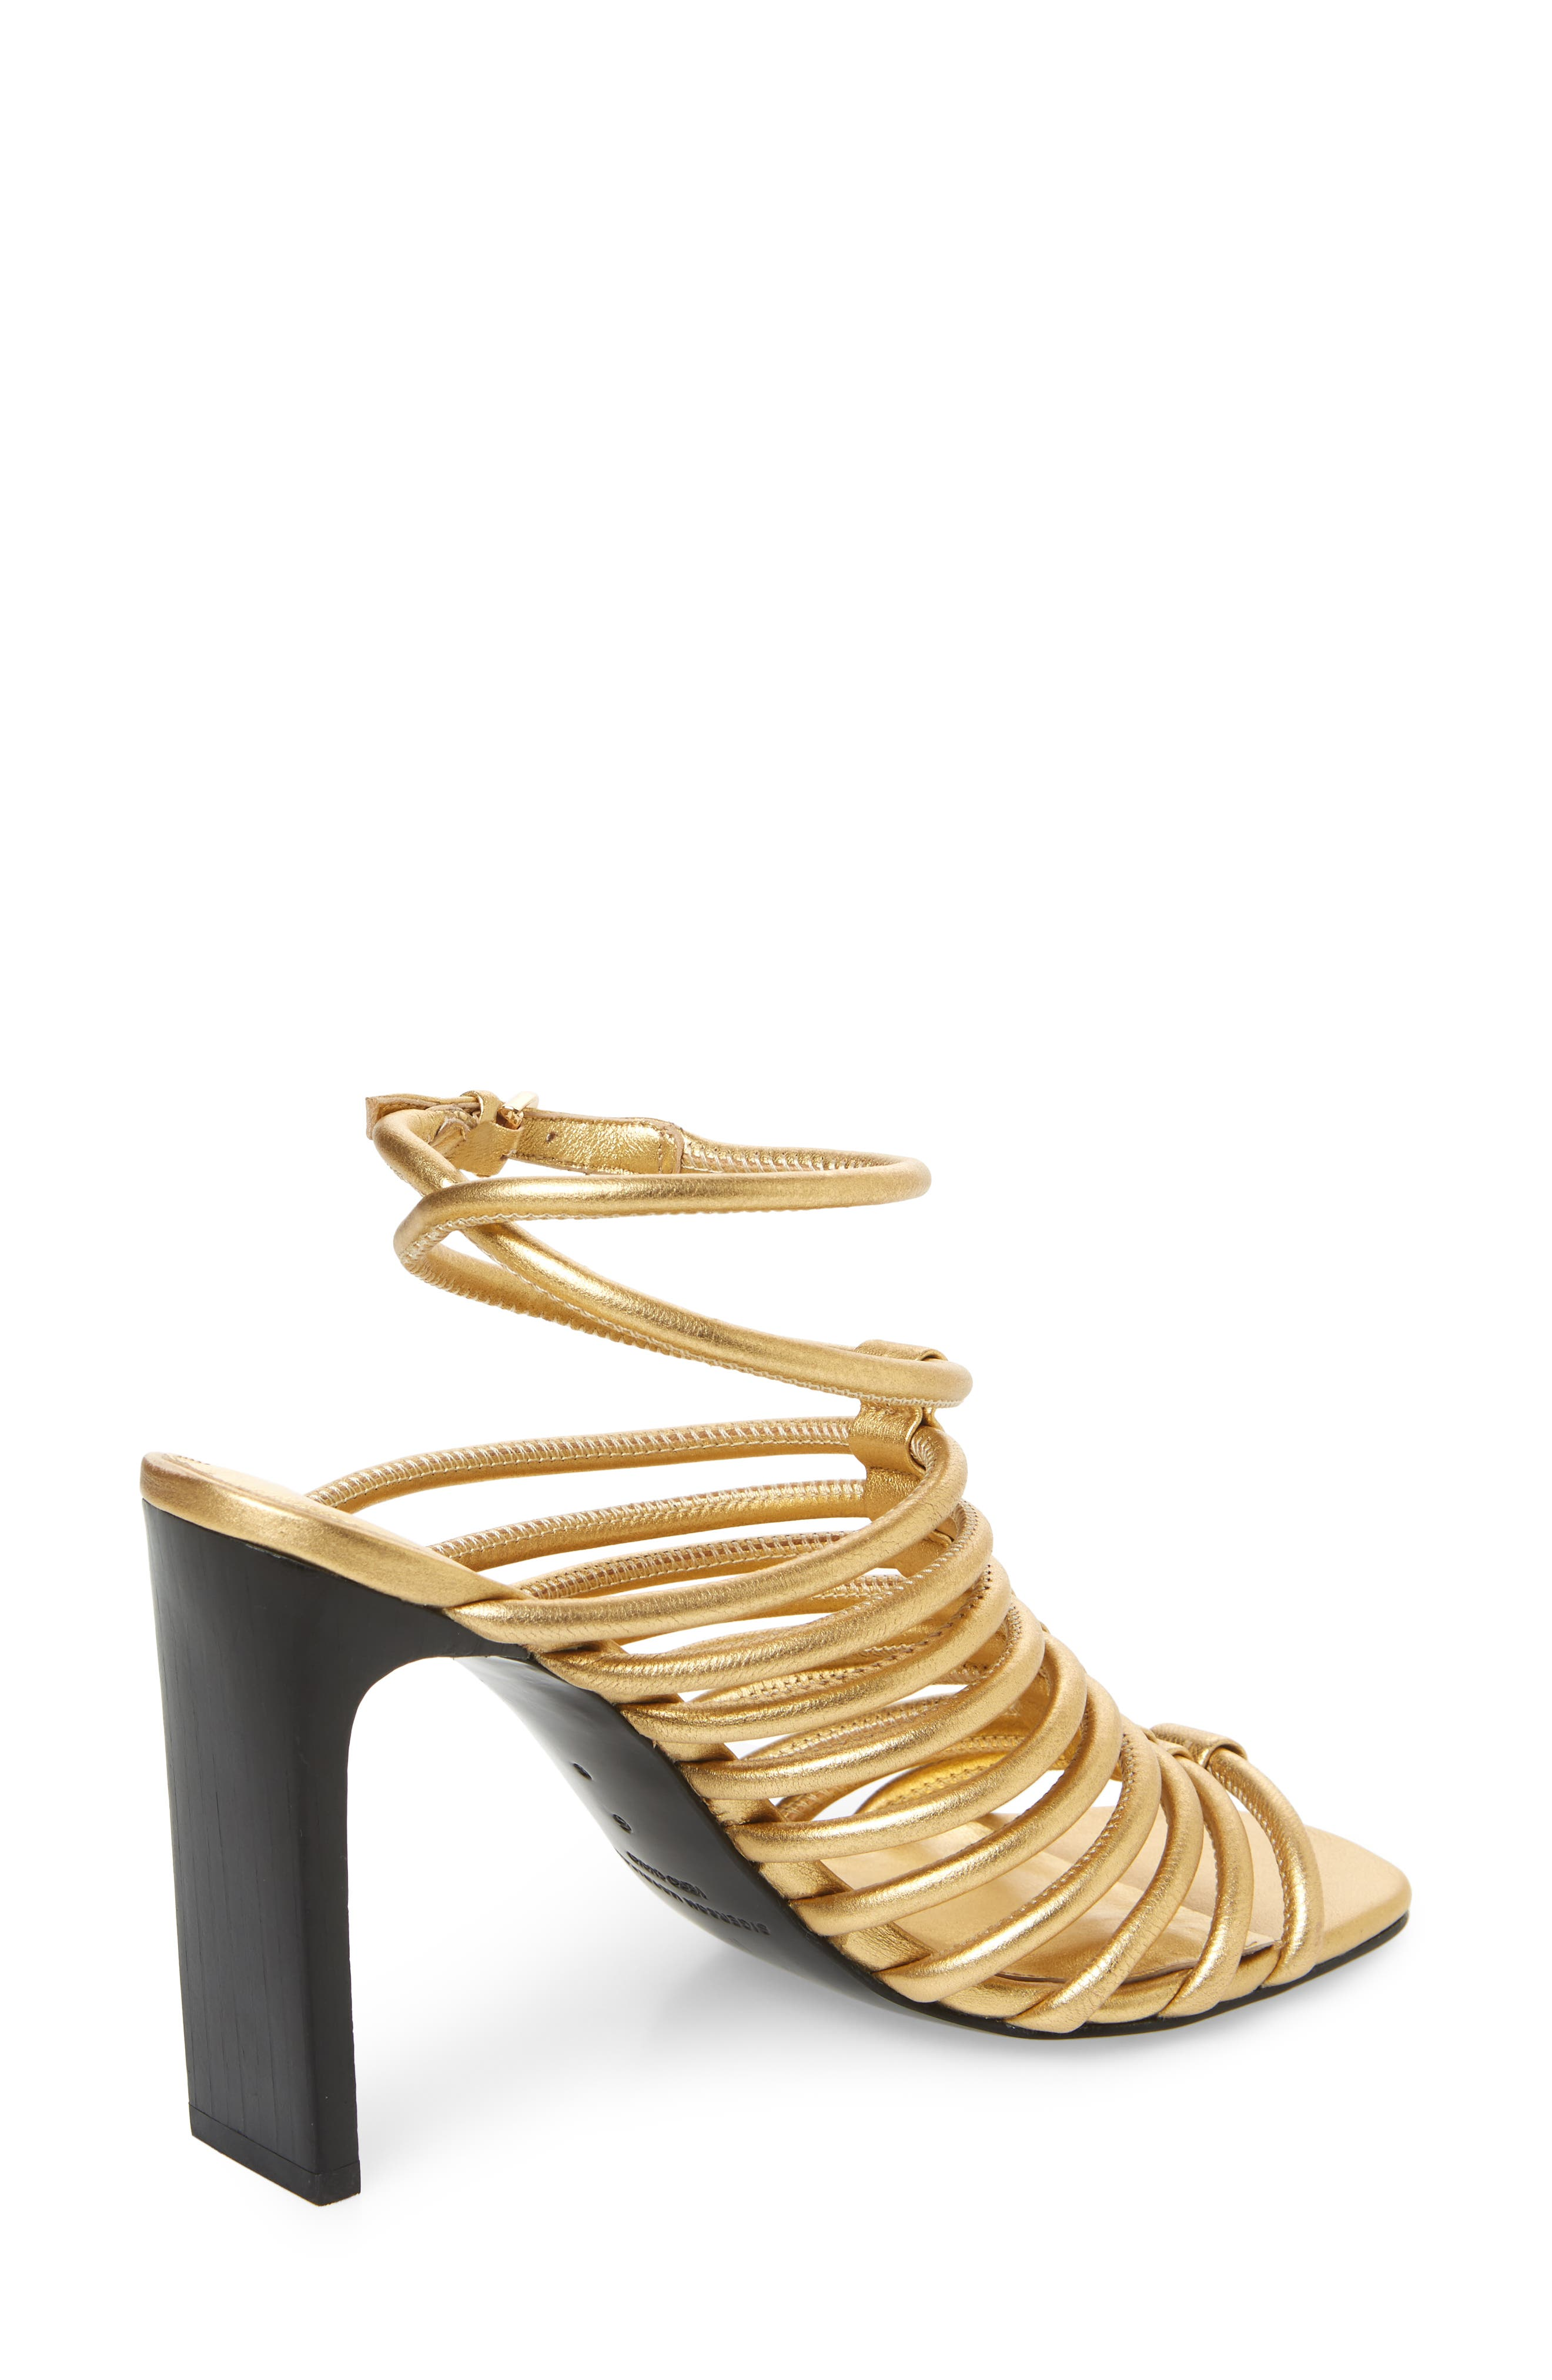 HH Caged Ankle Strap Sandal,                             Alternate thumbnail 3, color,                             Gold